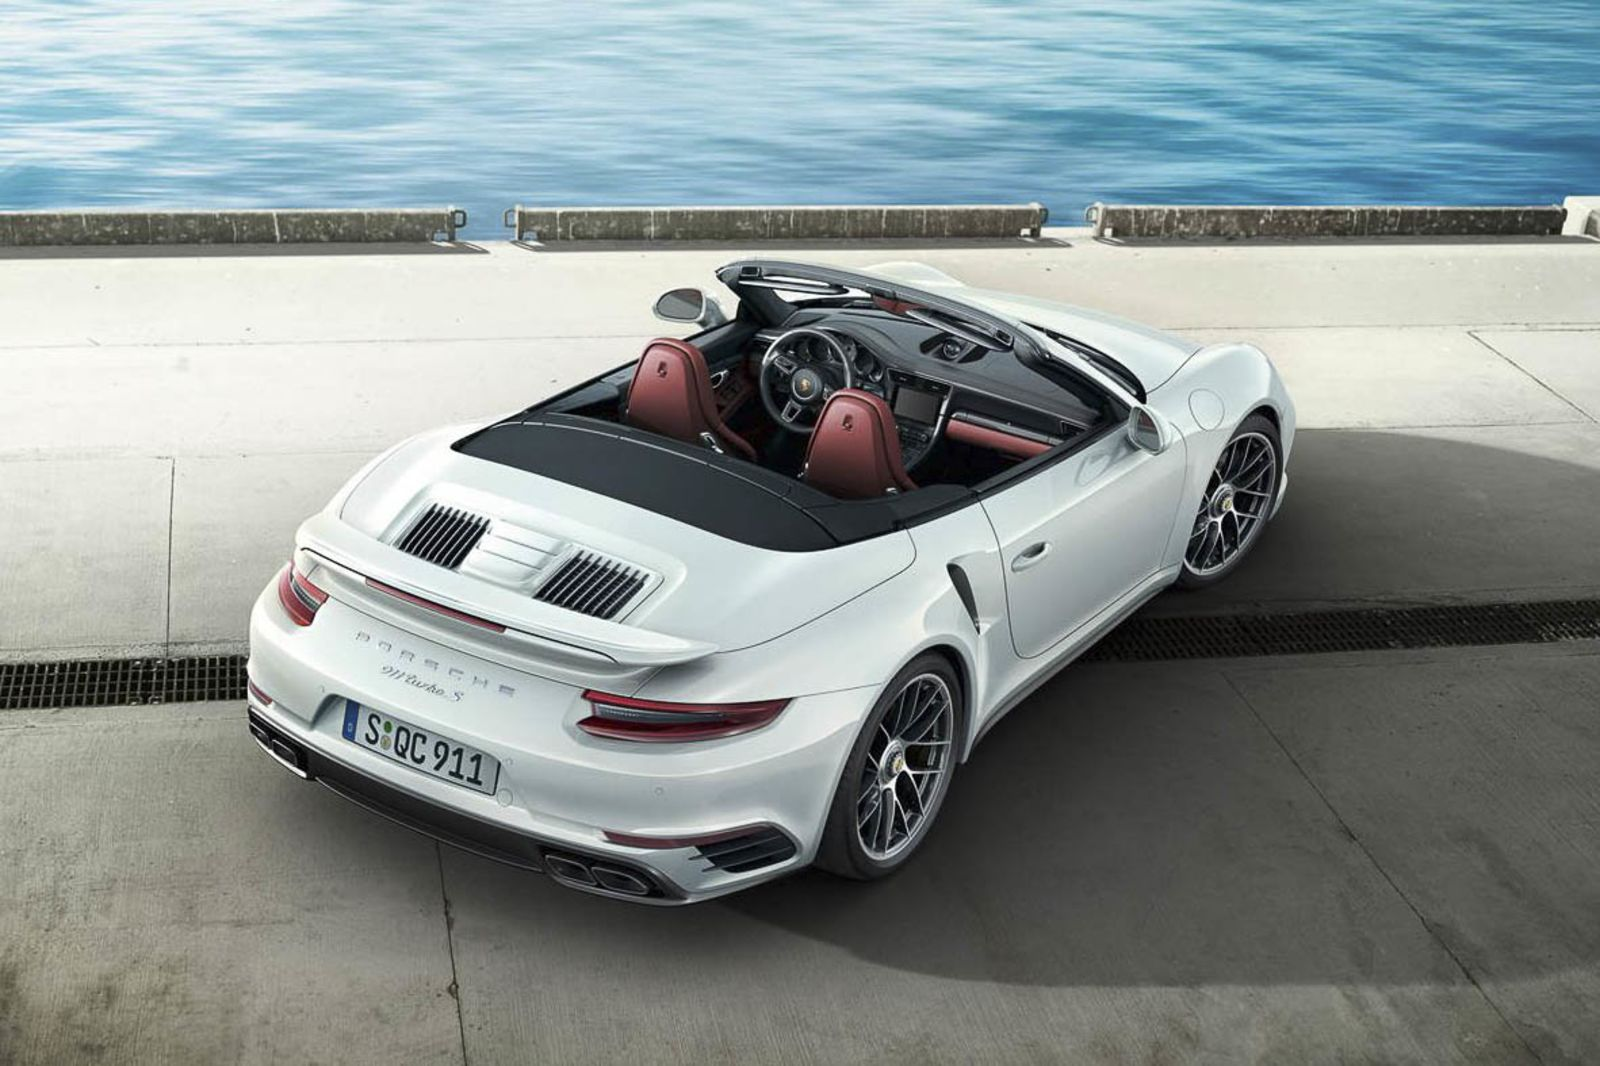 Convertible: Porsche 911 Turbo Cabriolet